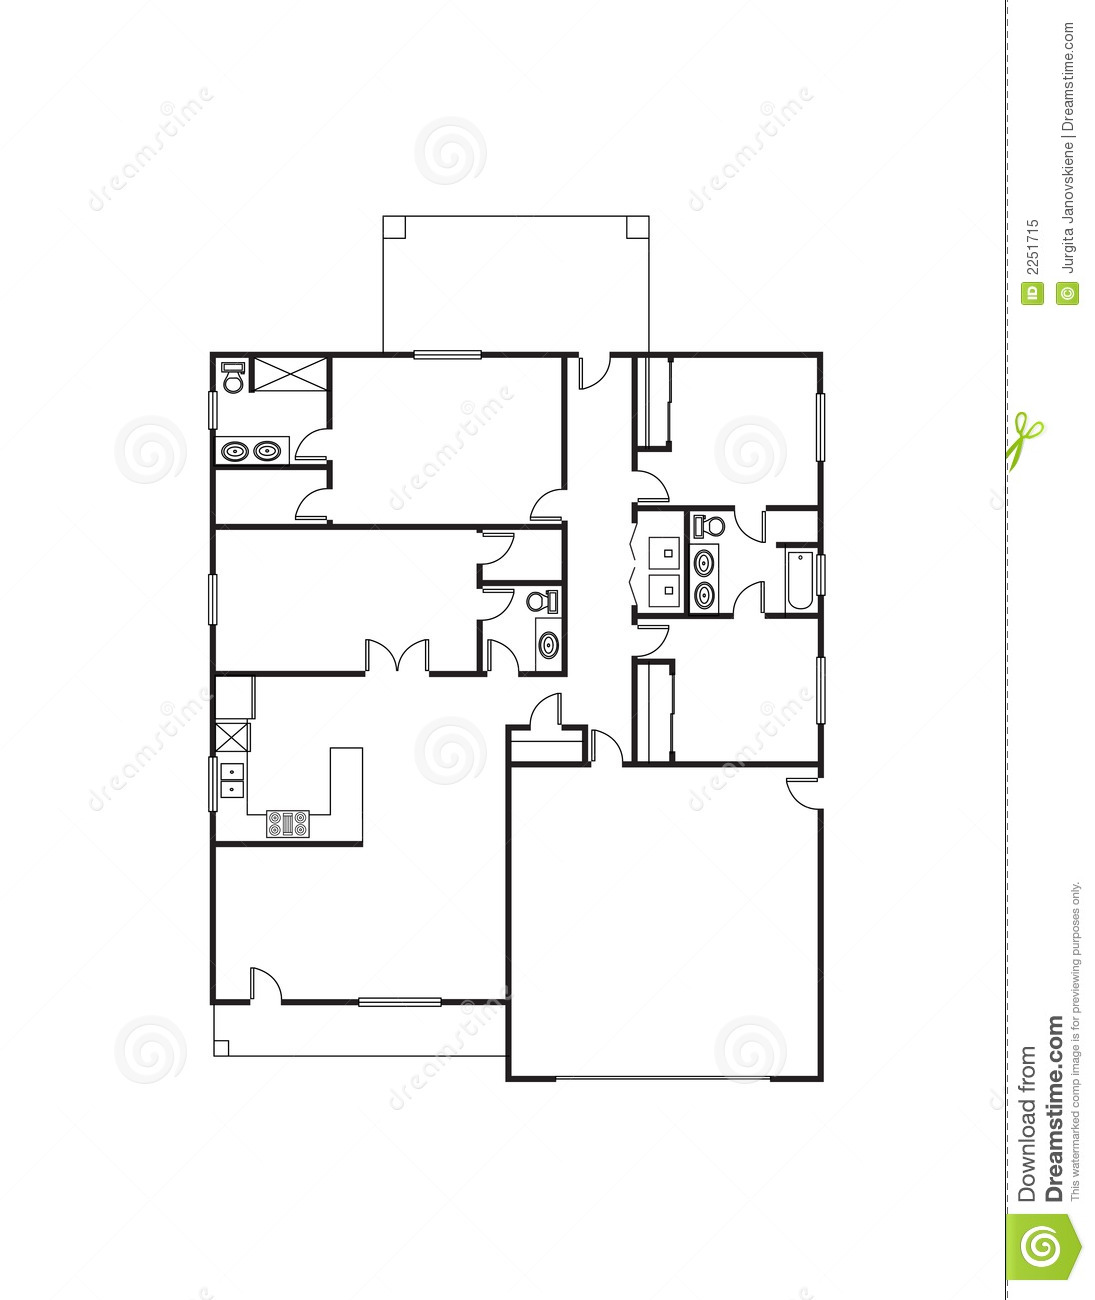 House plan royalty free stock photo image 2251715 for Stock house plans